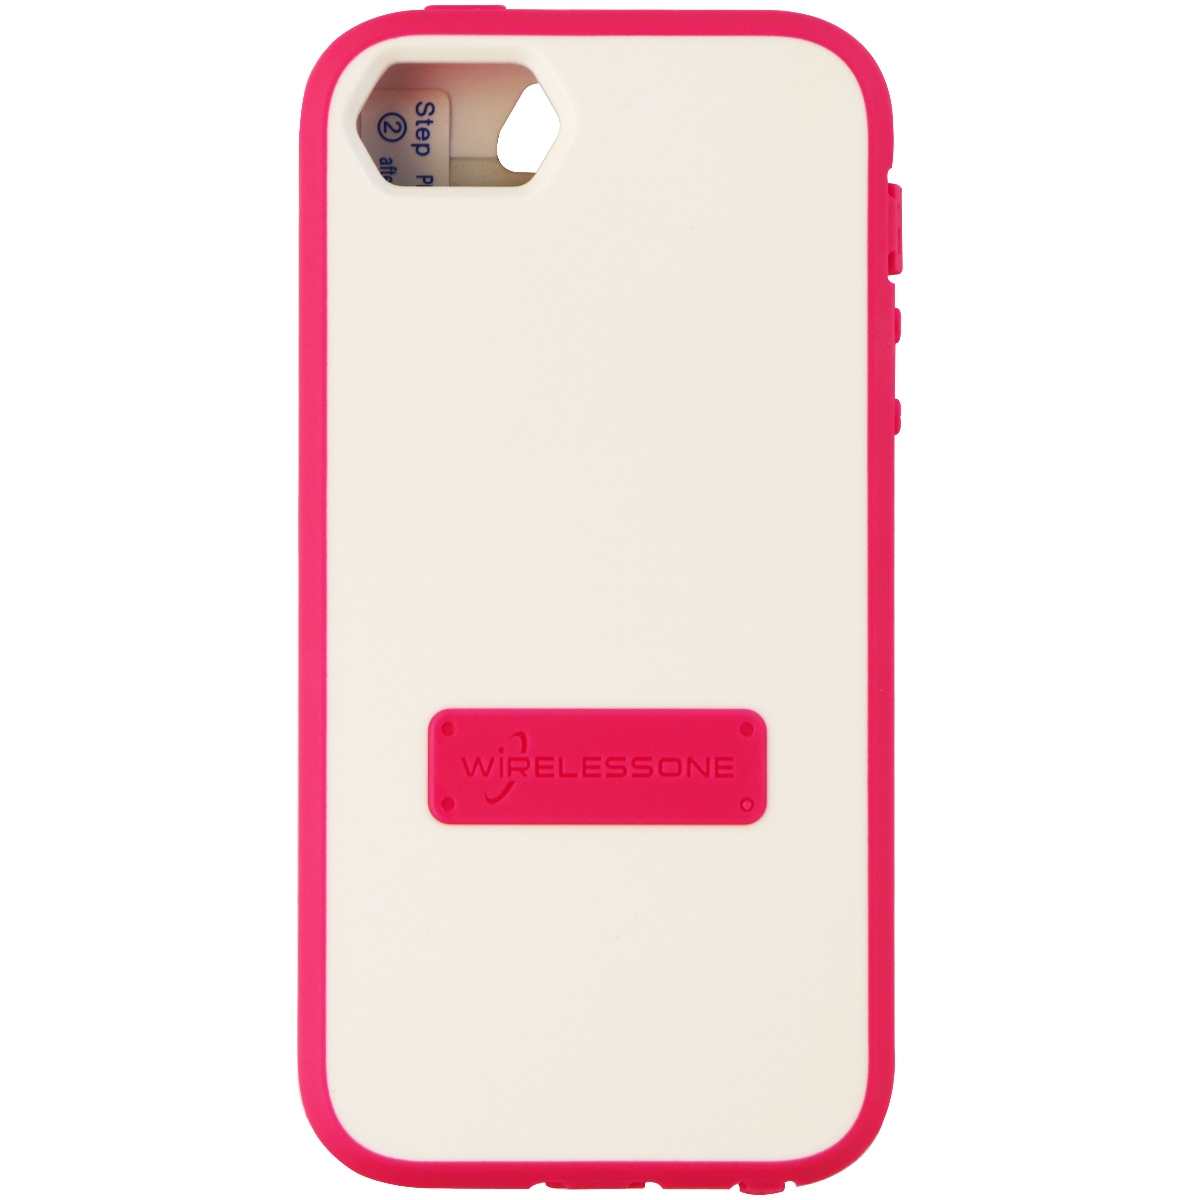 WirelessOne Contour Series Protective Case Cover for iPhone SE 5S 5 - Pink White